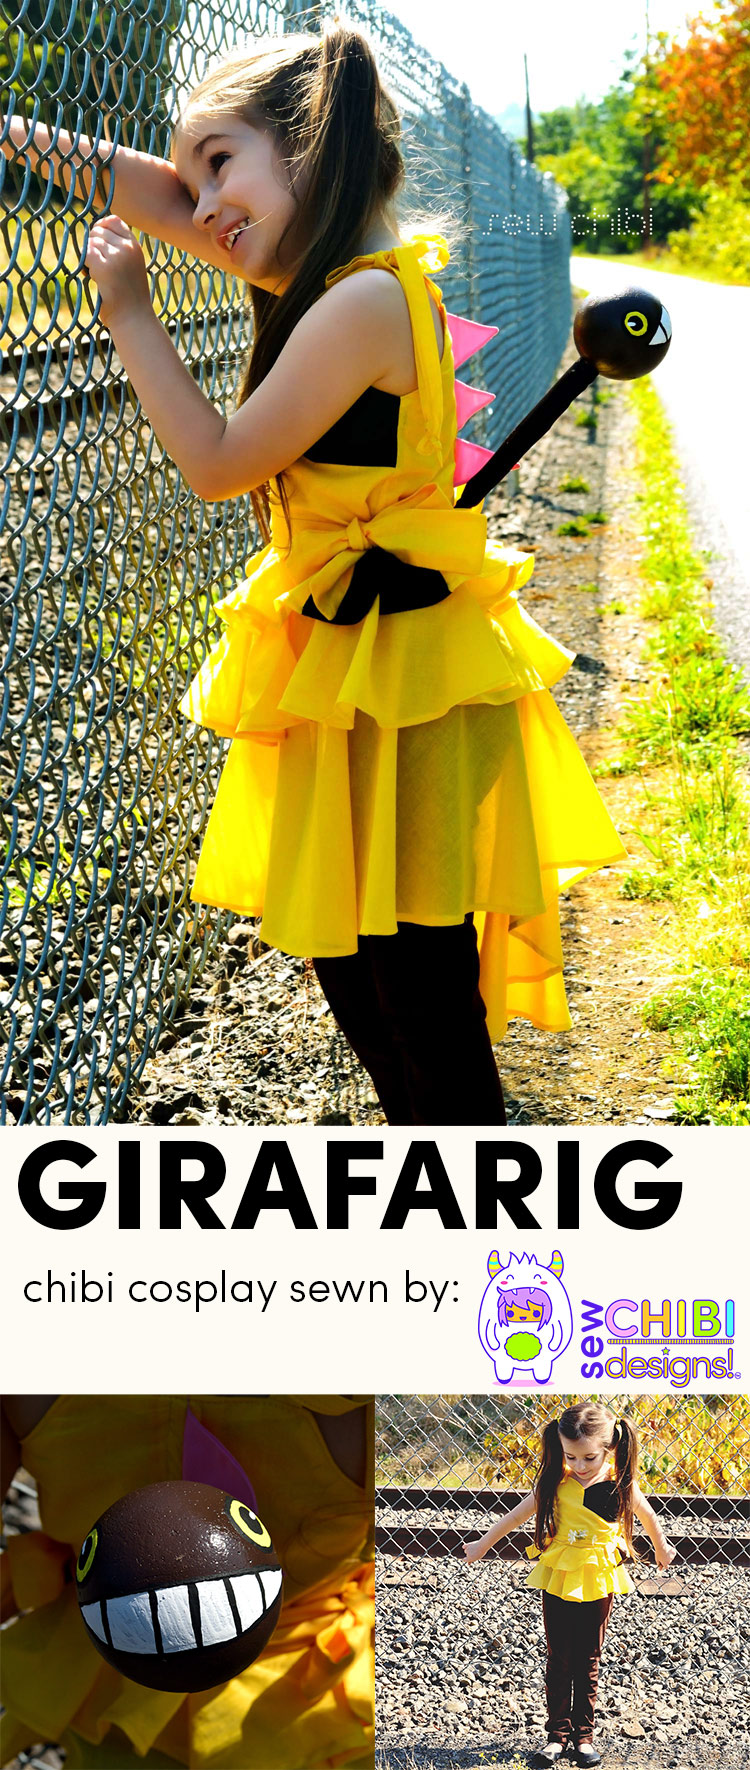 giragarig dress